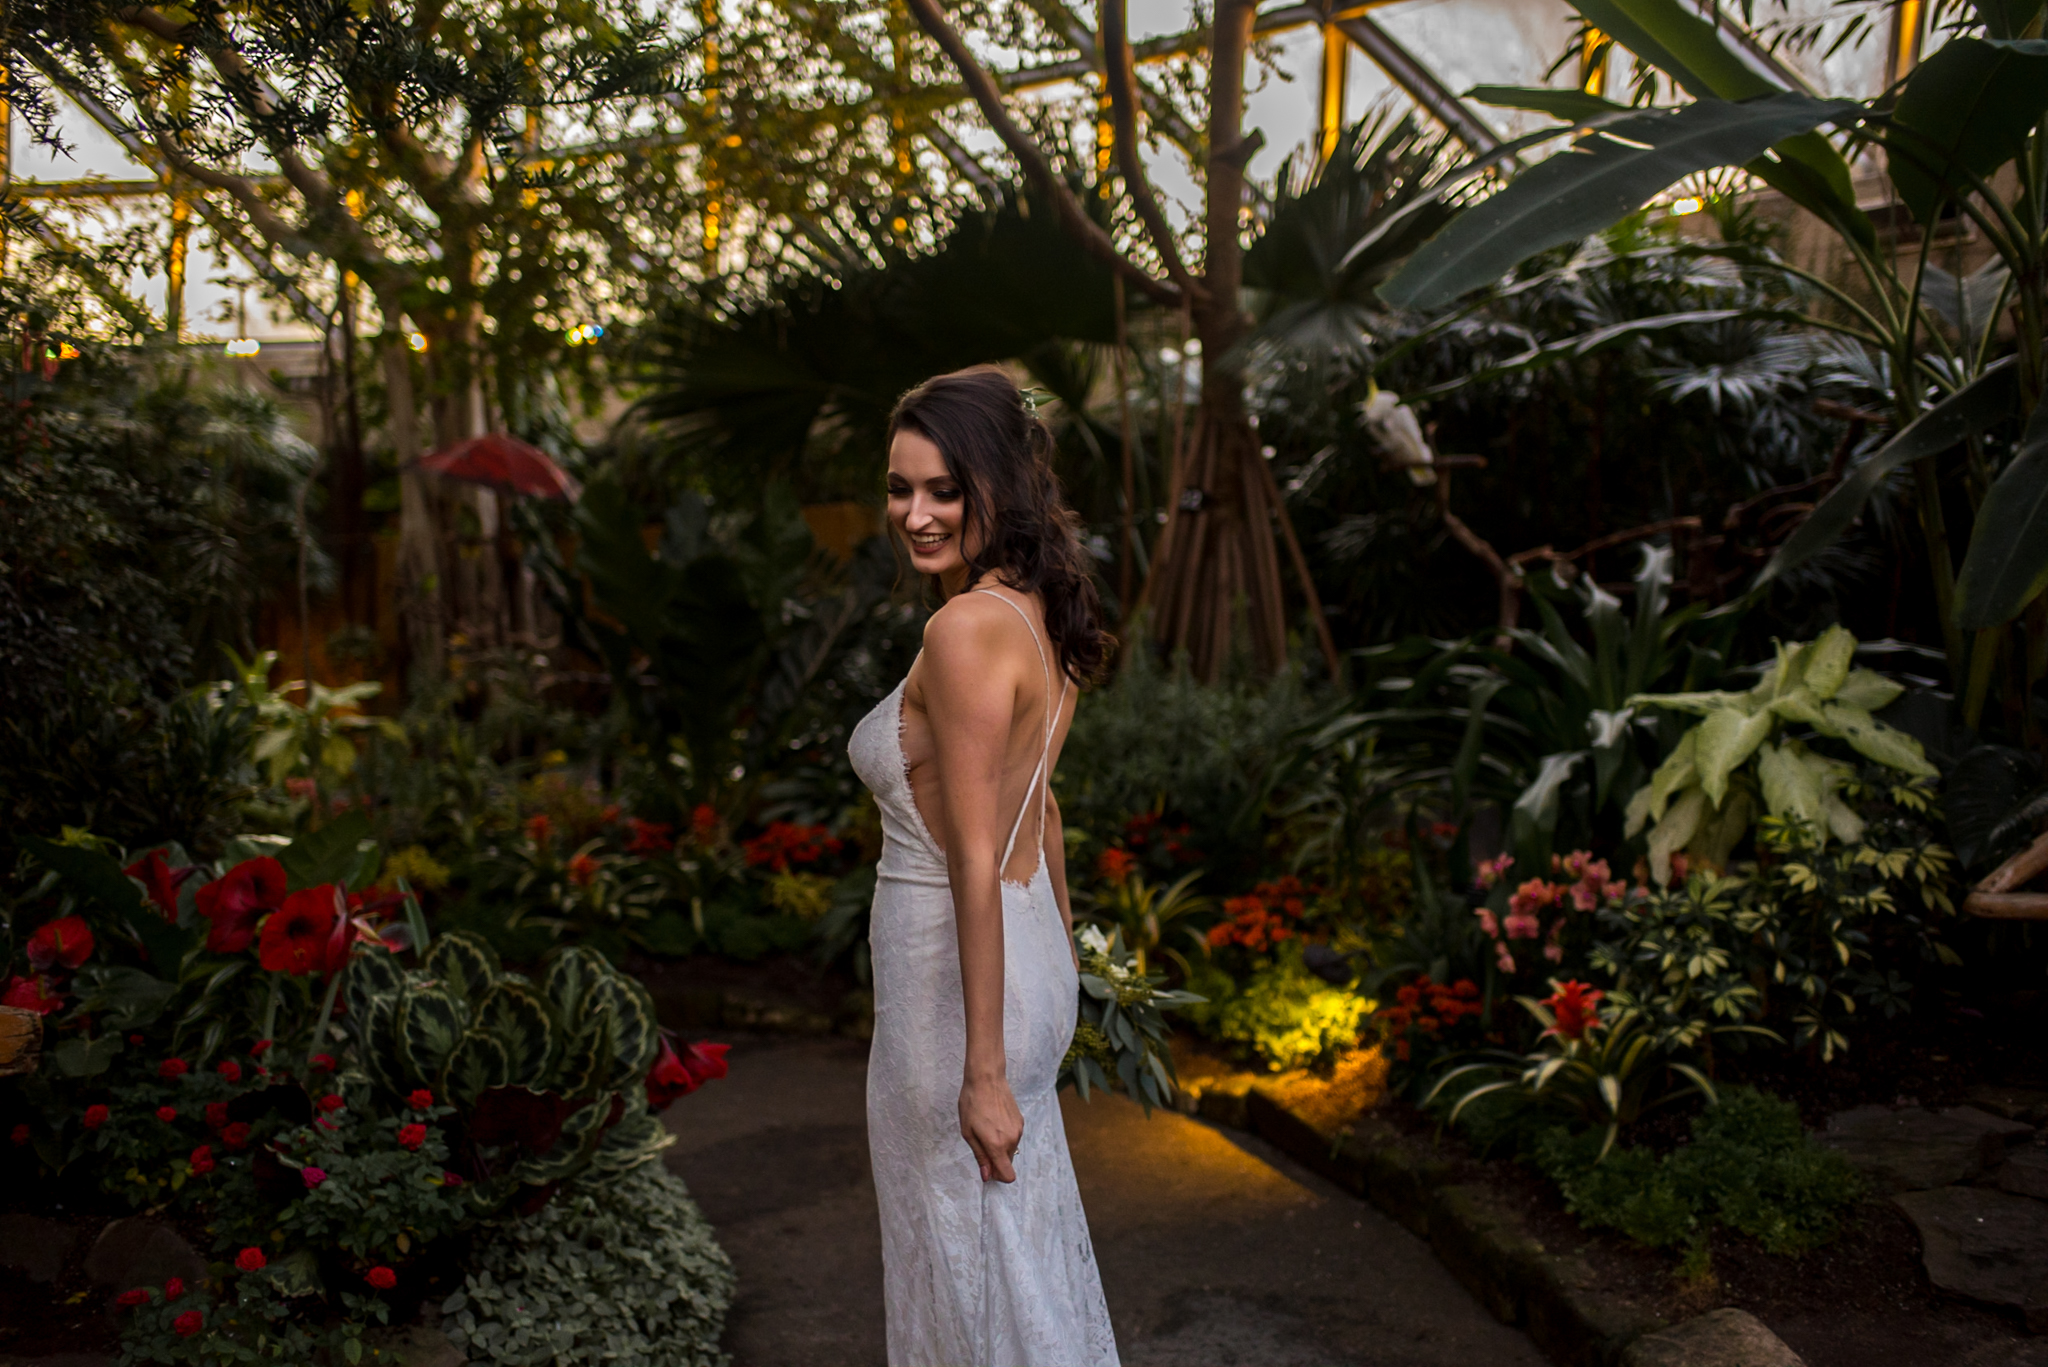 Queen Elizabeth Park Wedding Photographer-81.jpg